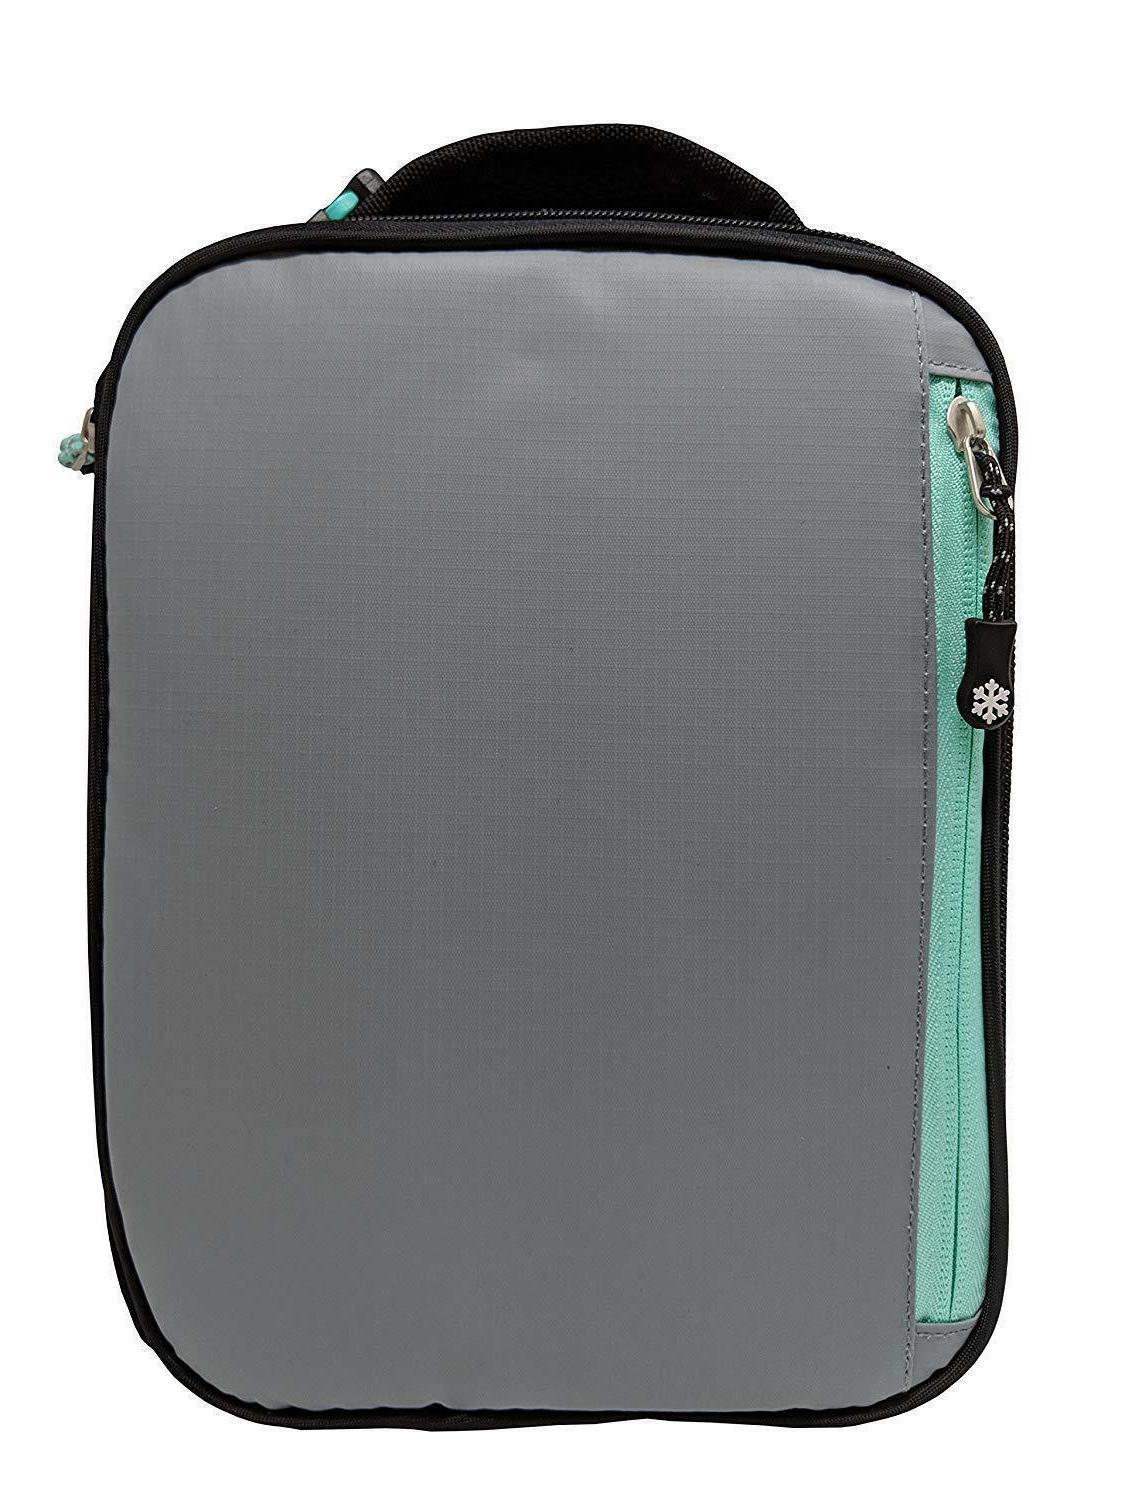 Insulated Lunch Box Bento Cooler Bag Picnic Packs